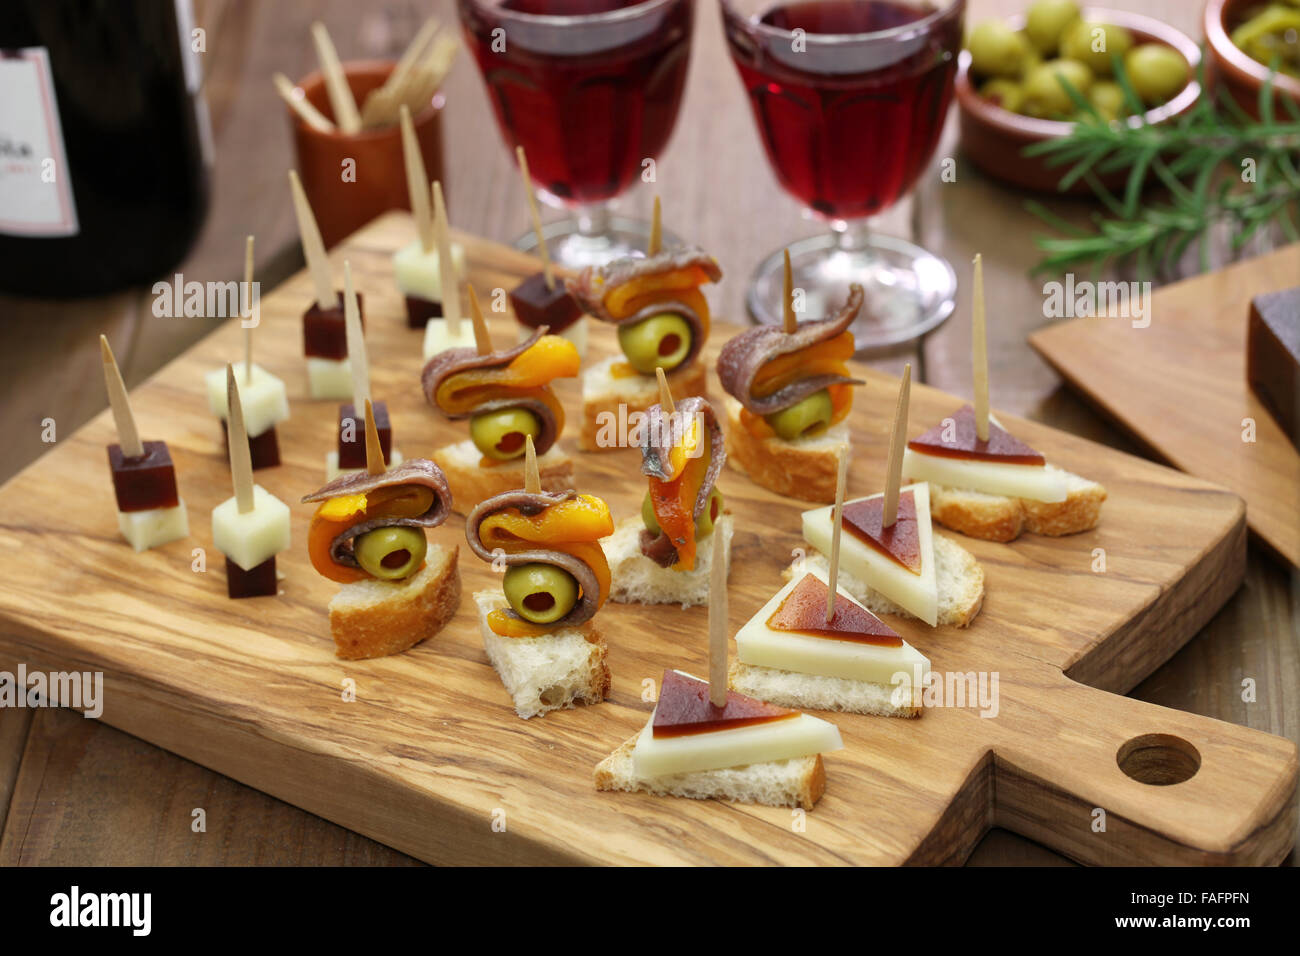 tapas pinchos spanish canapes party finger food stock photo 92545369 alamy. Black Bedroom Furniture Sets. Home Design Ideas